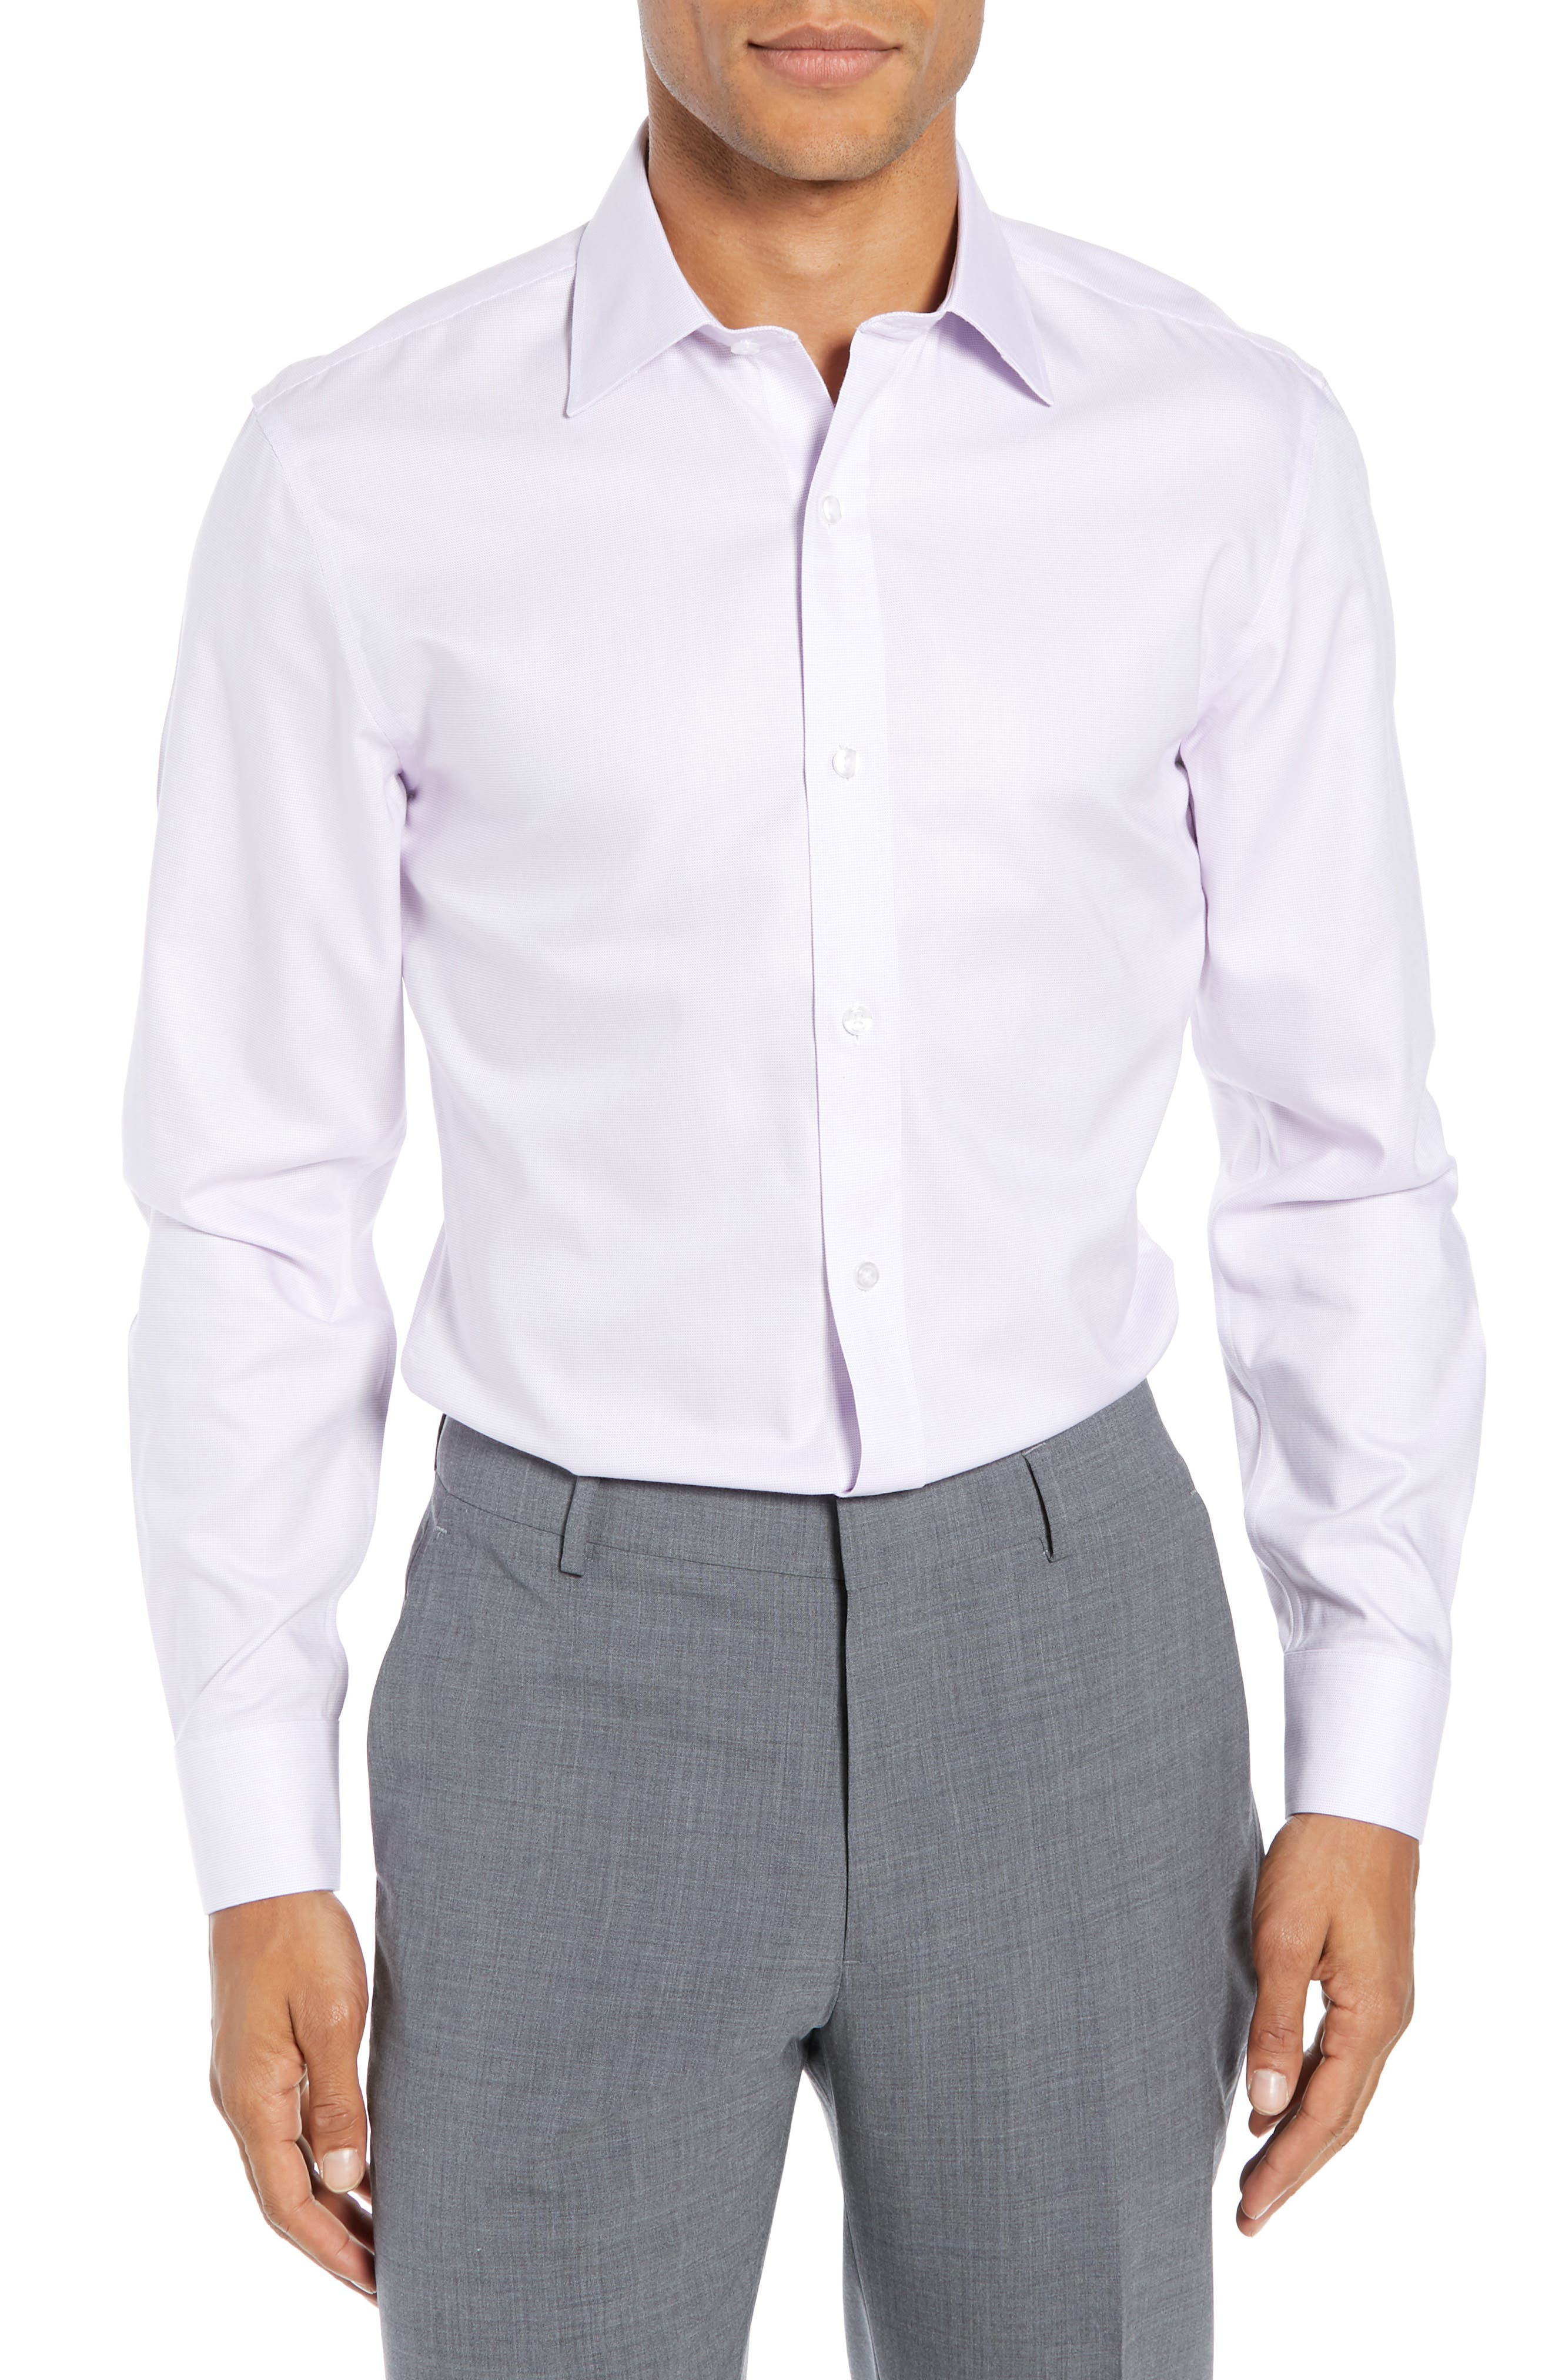 Bonobos Daily Grind Slim Fit Solid Dress Shirt, Purple